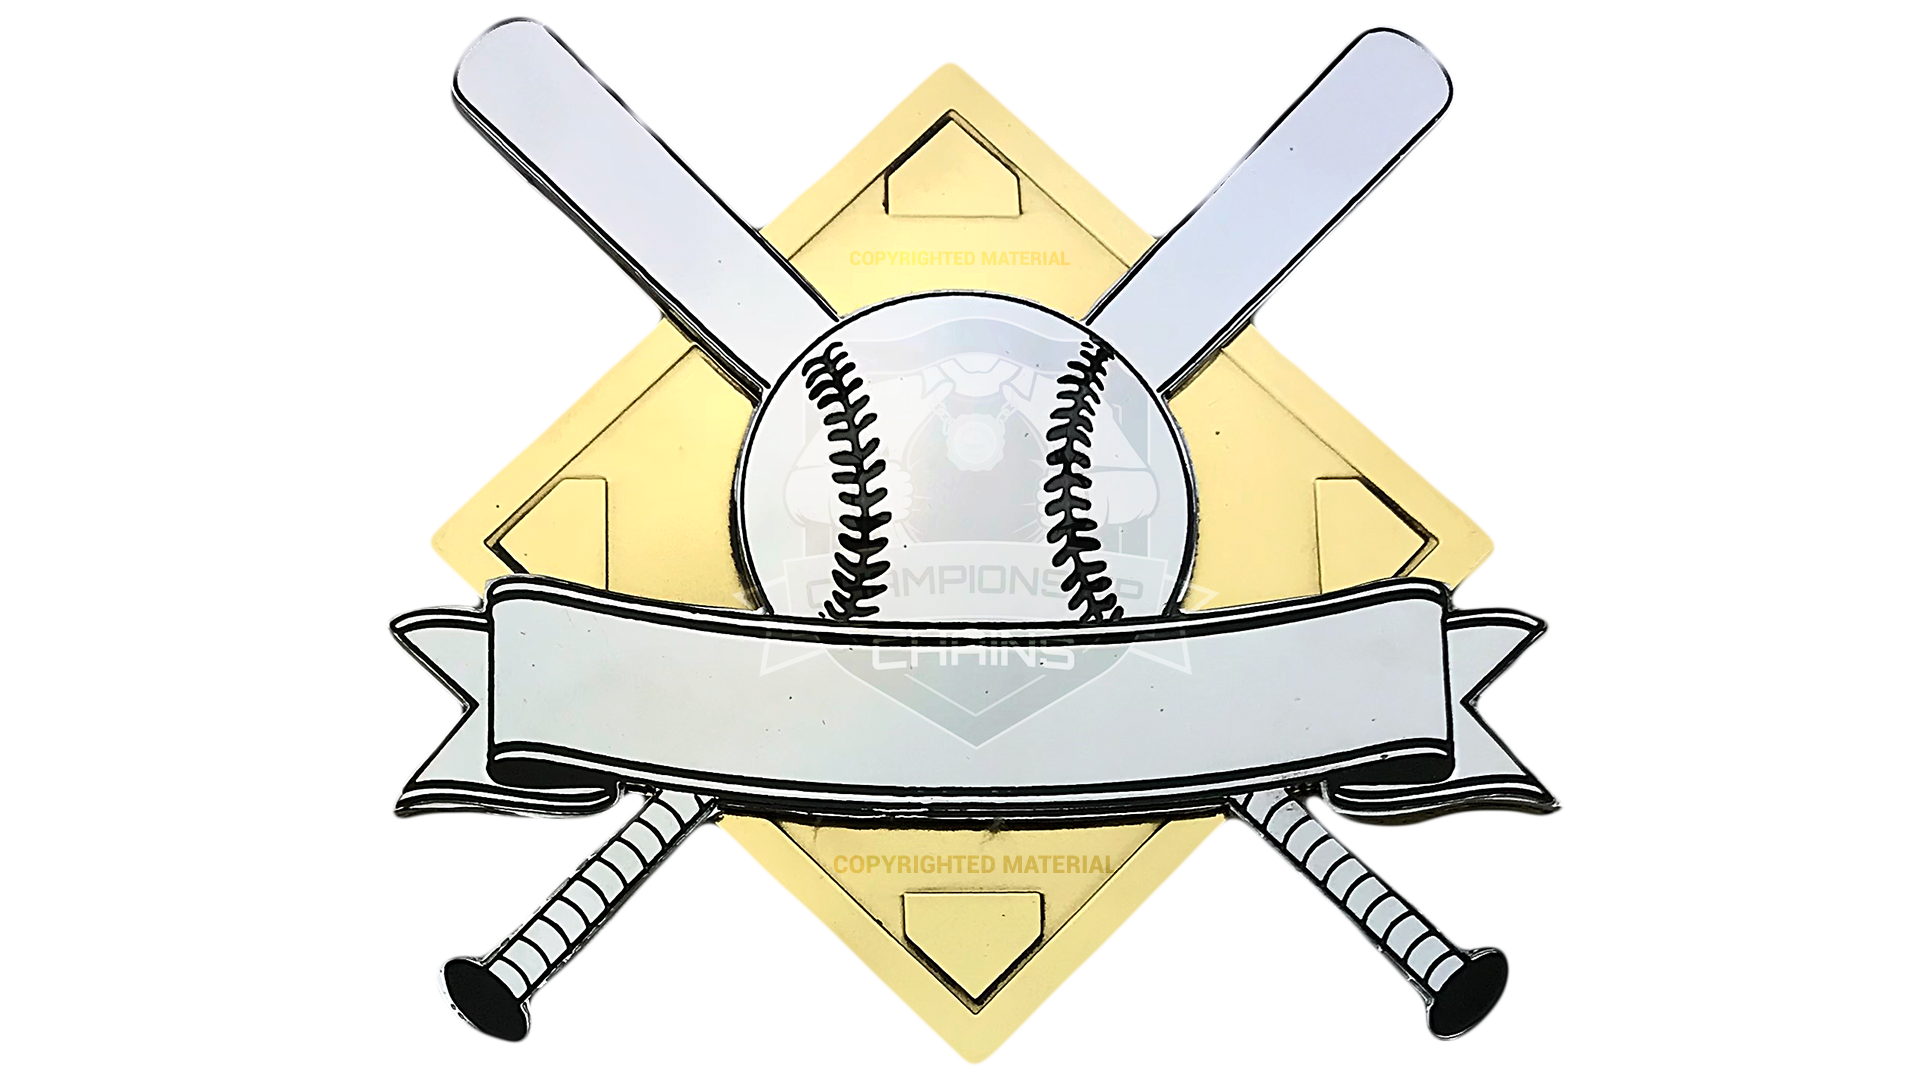 HomeRun customized championship chain image